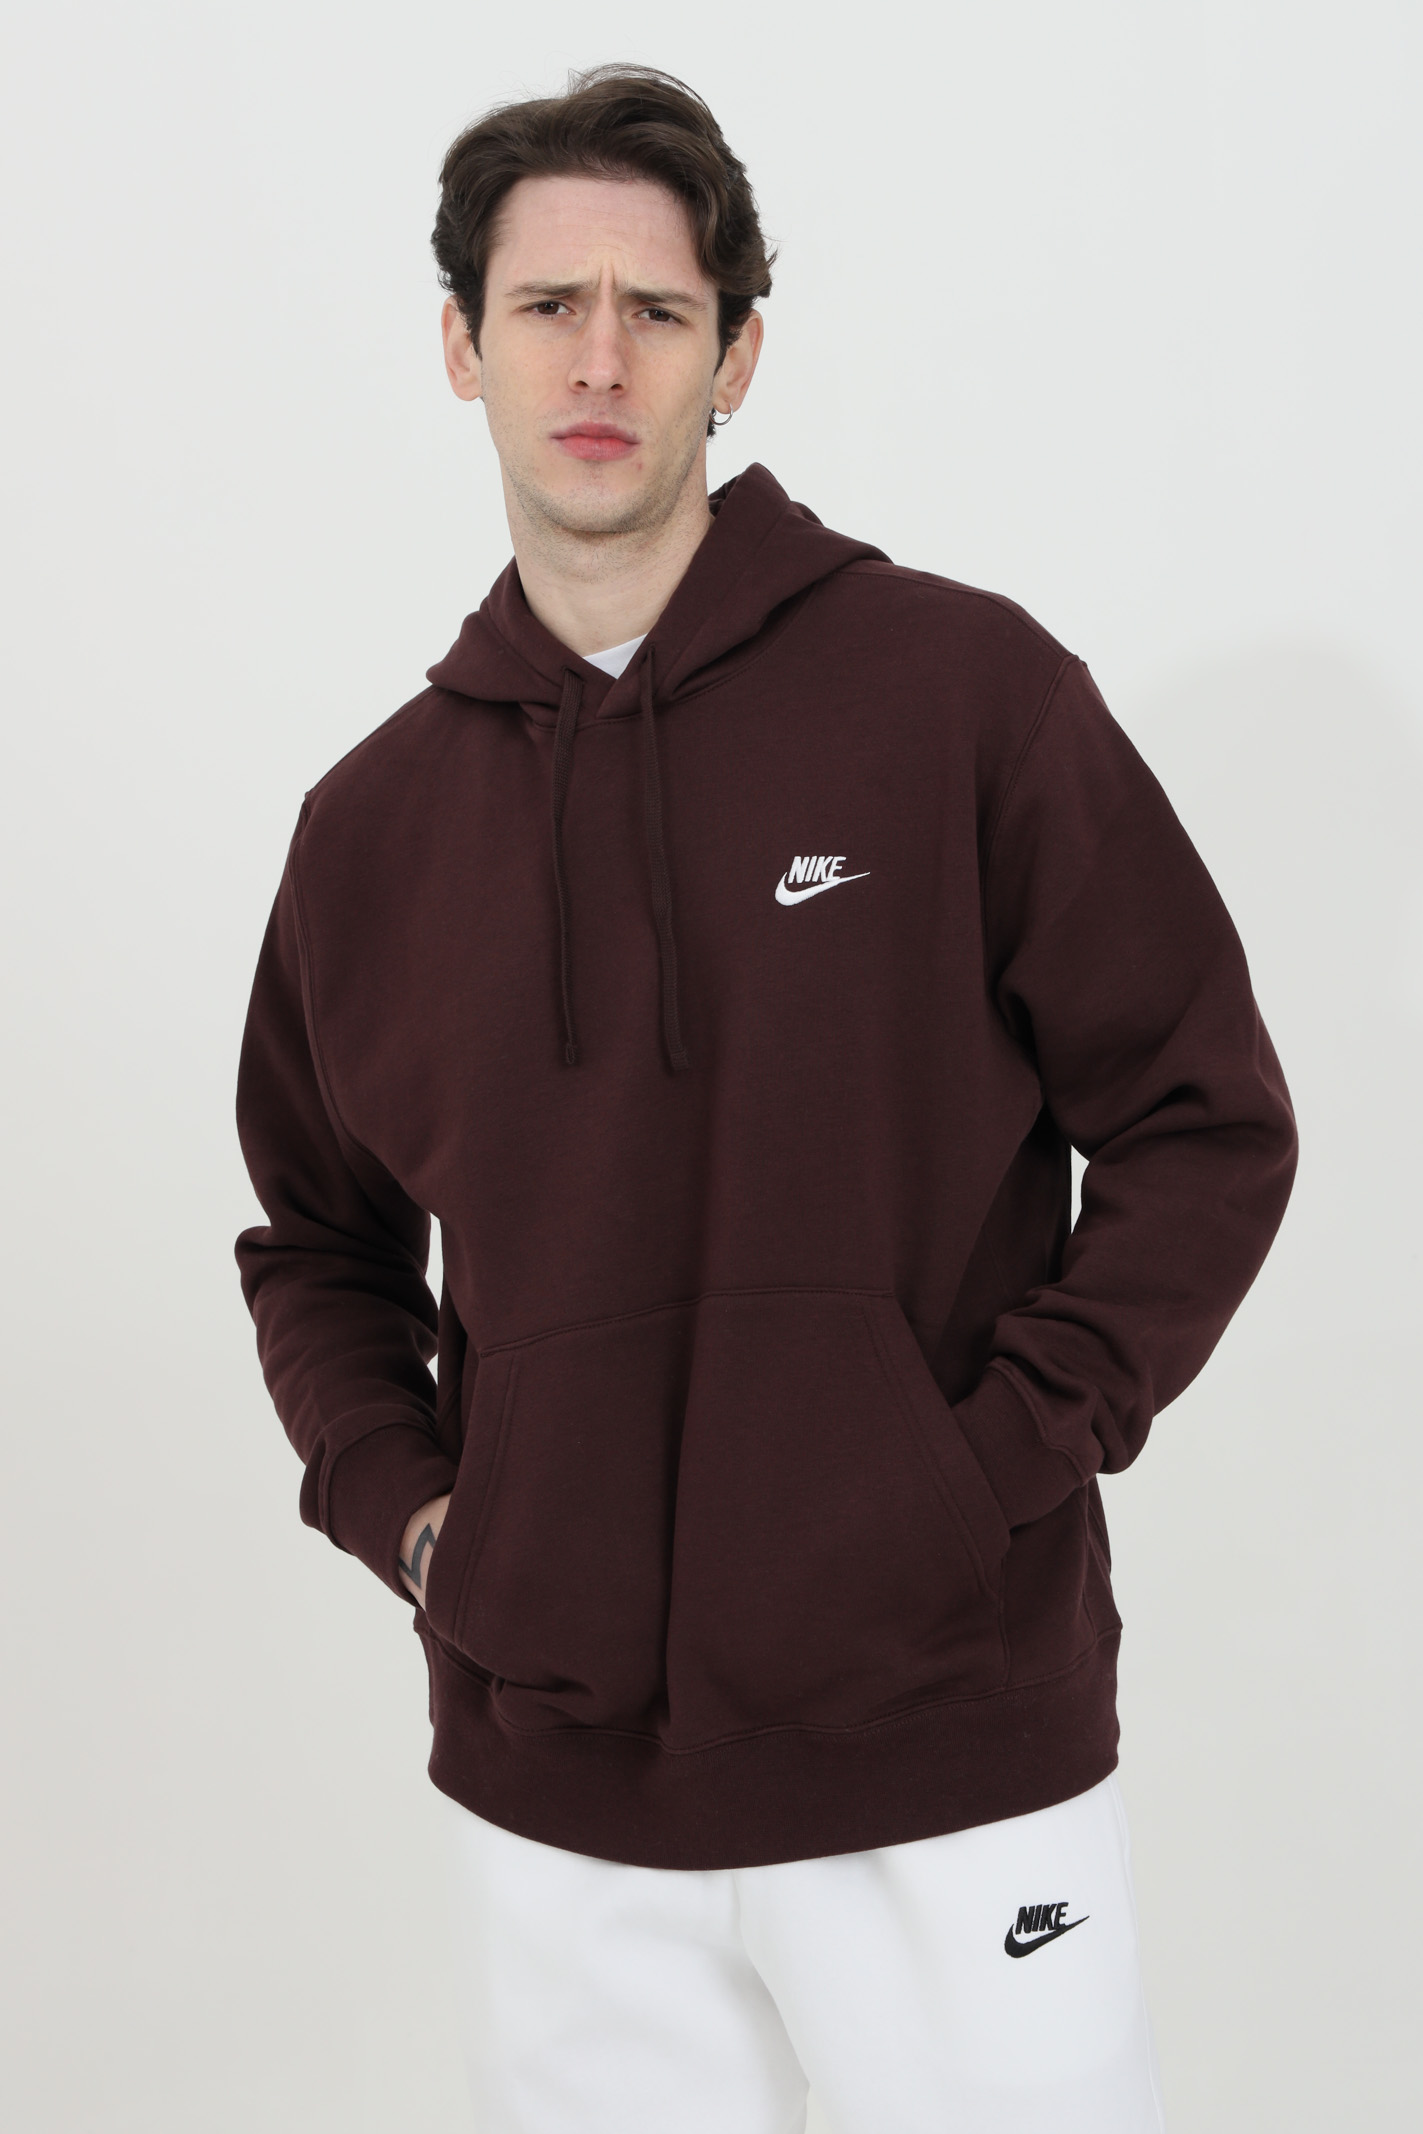 Hoodie with laces, solid color NIKE | Sweatshirt | BV2654263